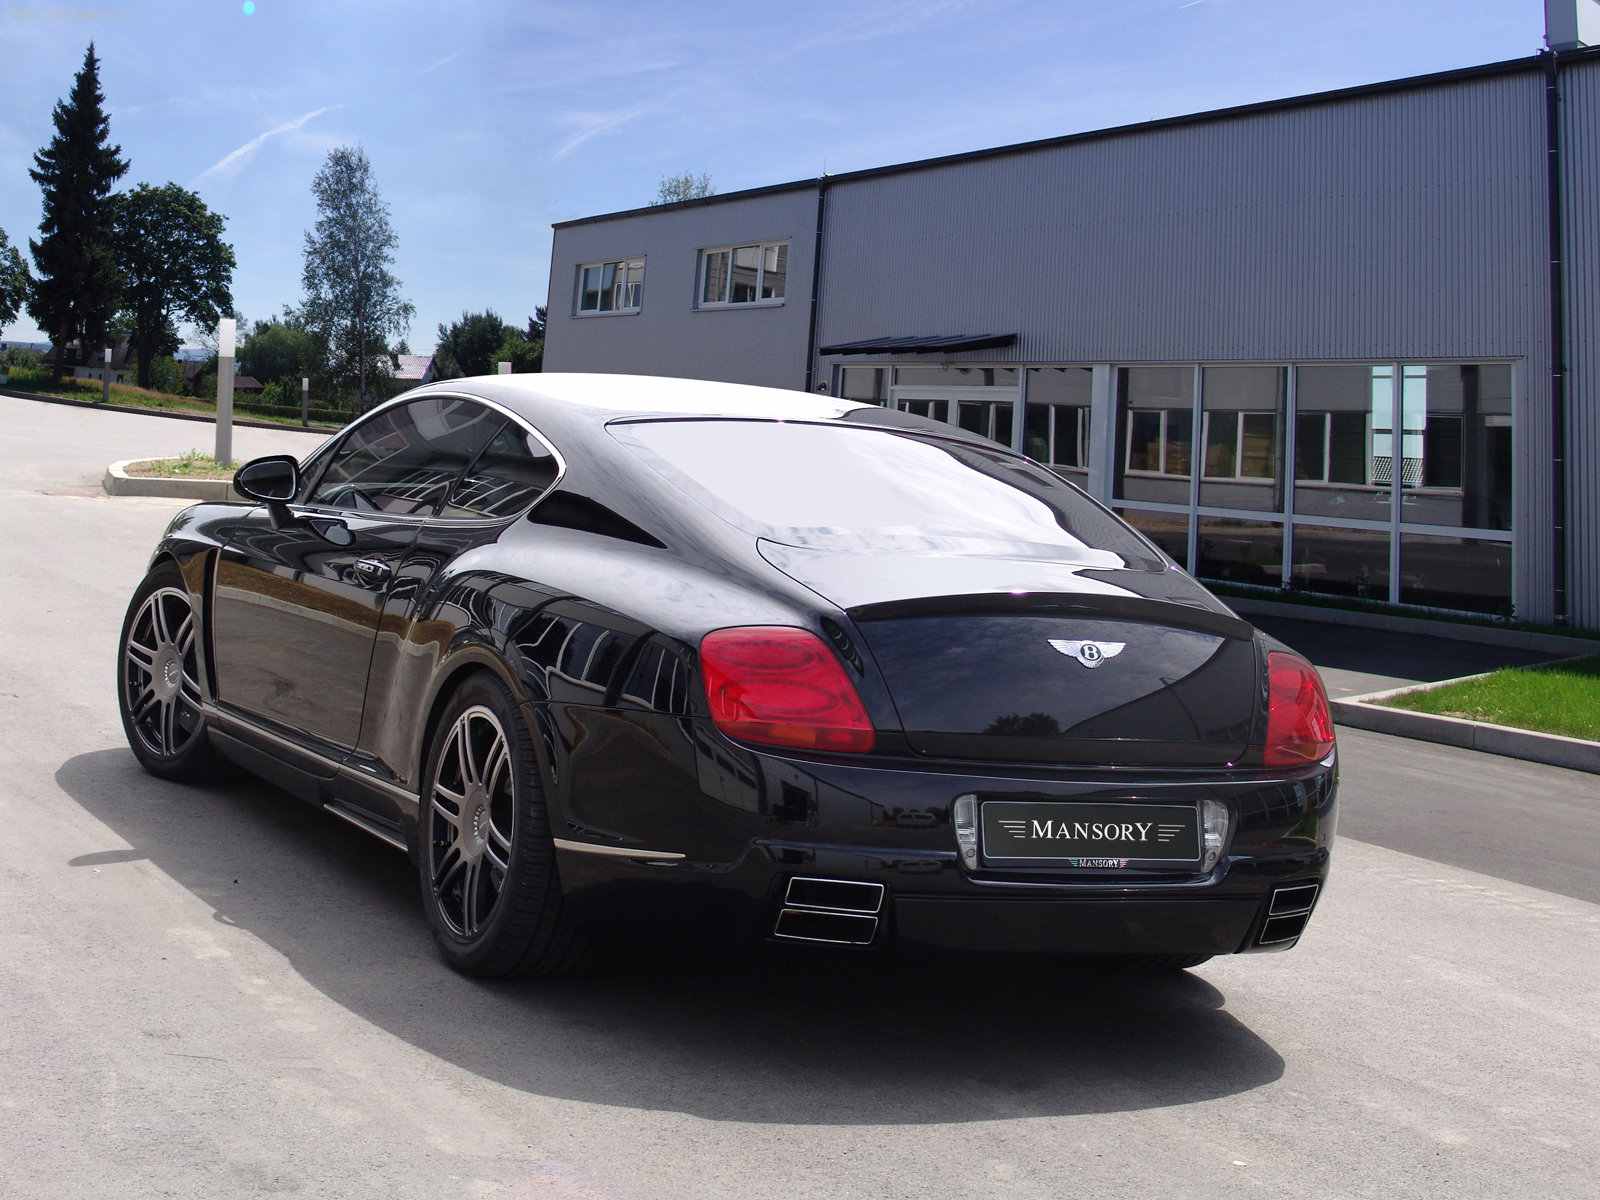 Mansory Bentley Continental GT photo 47698